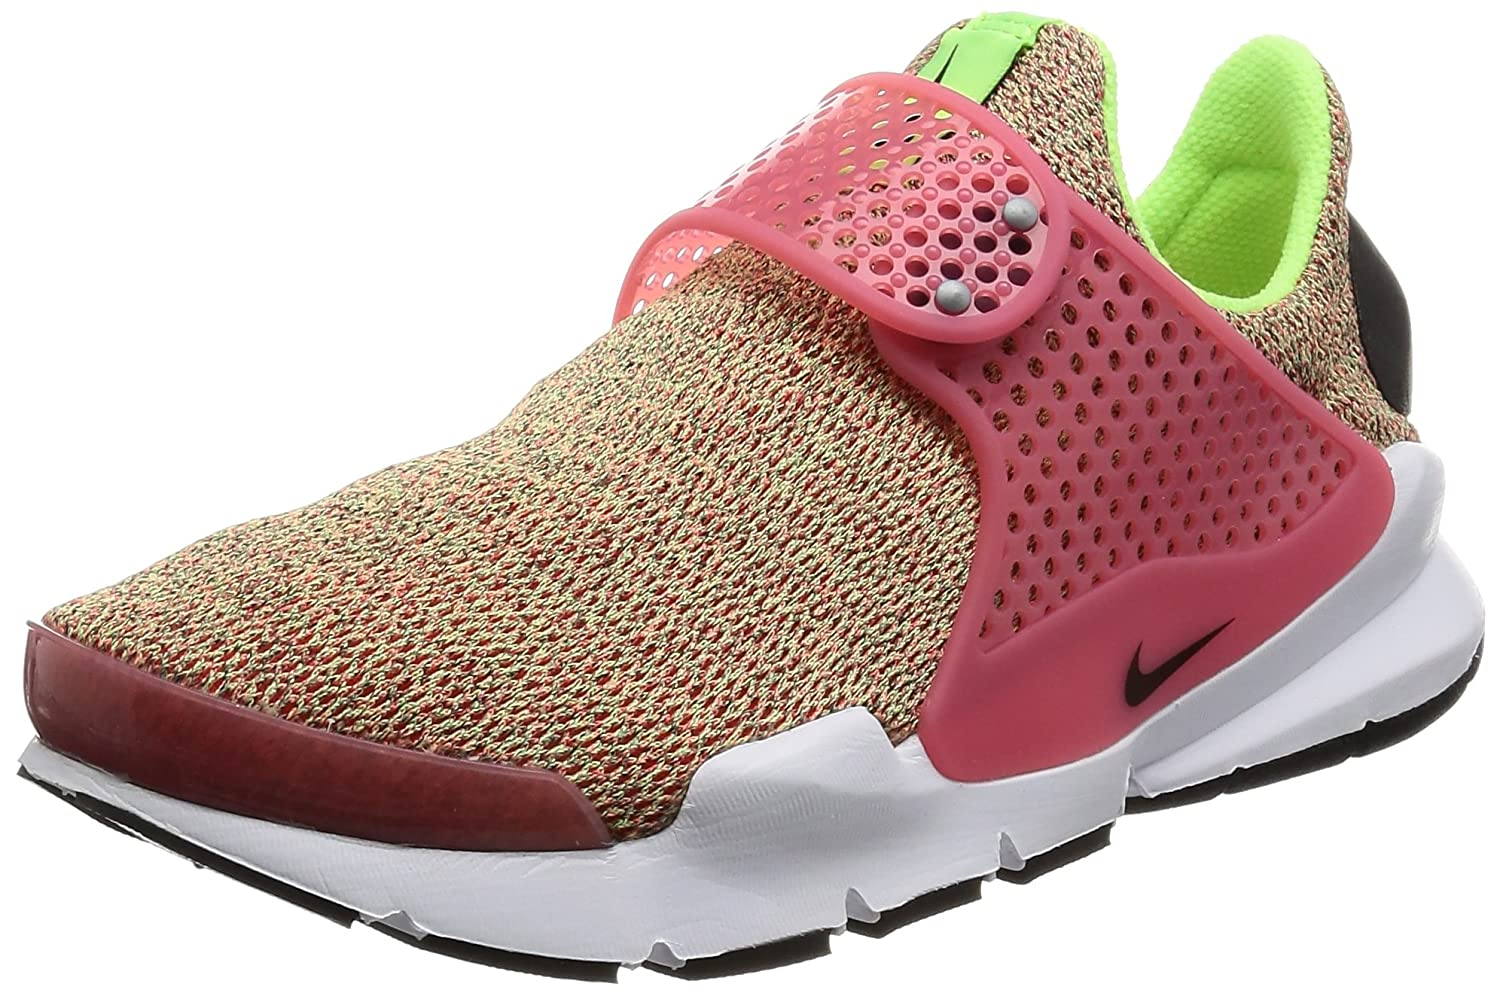 NIKE Womens Sock Dart Running Shoes B01MYA9APN 8 B(M) US|Ghost Green/Hot Punch/White